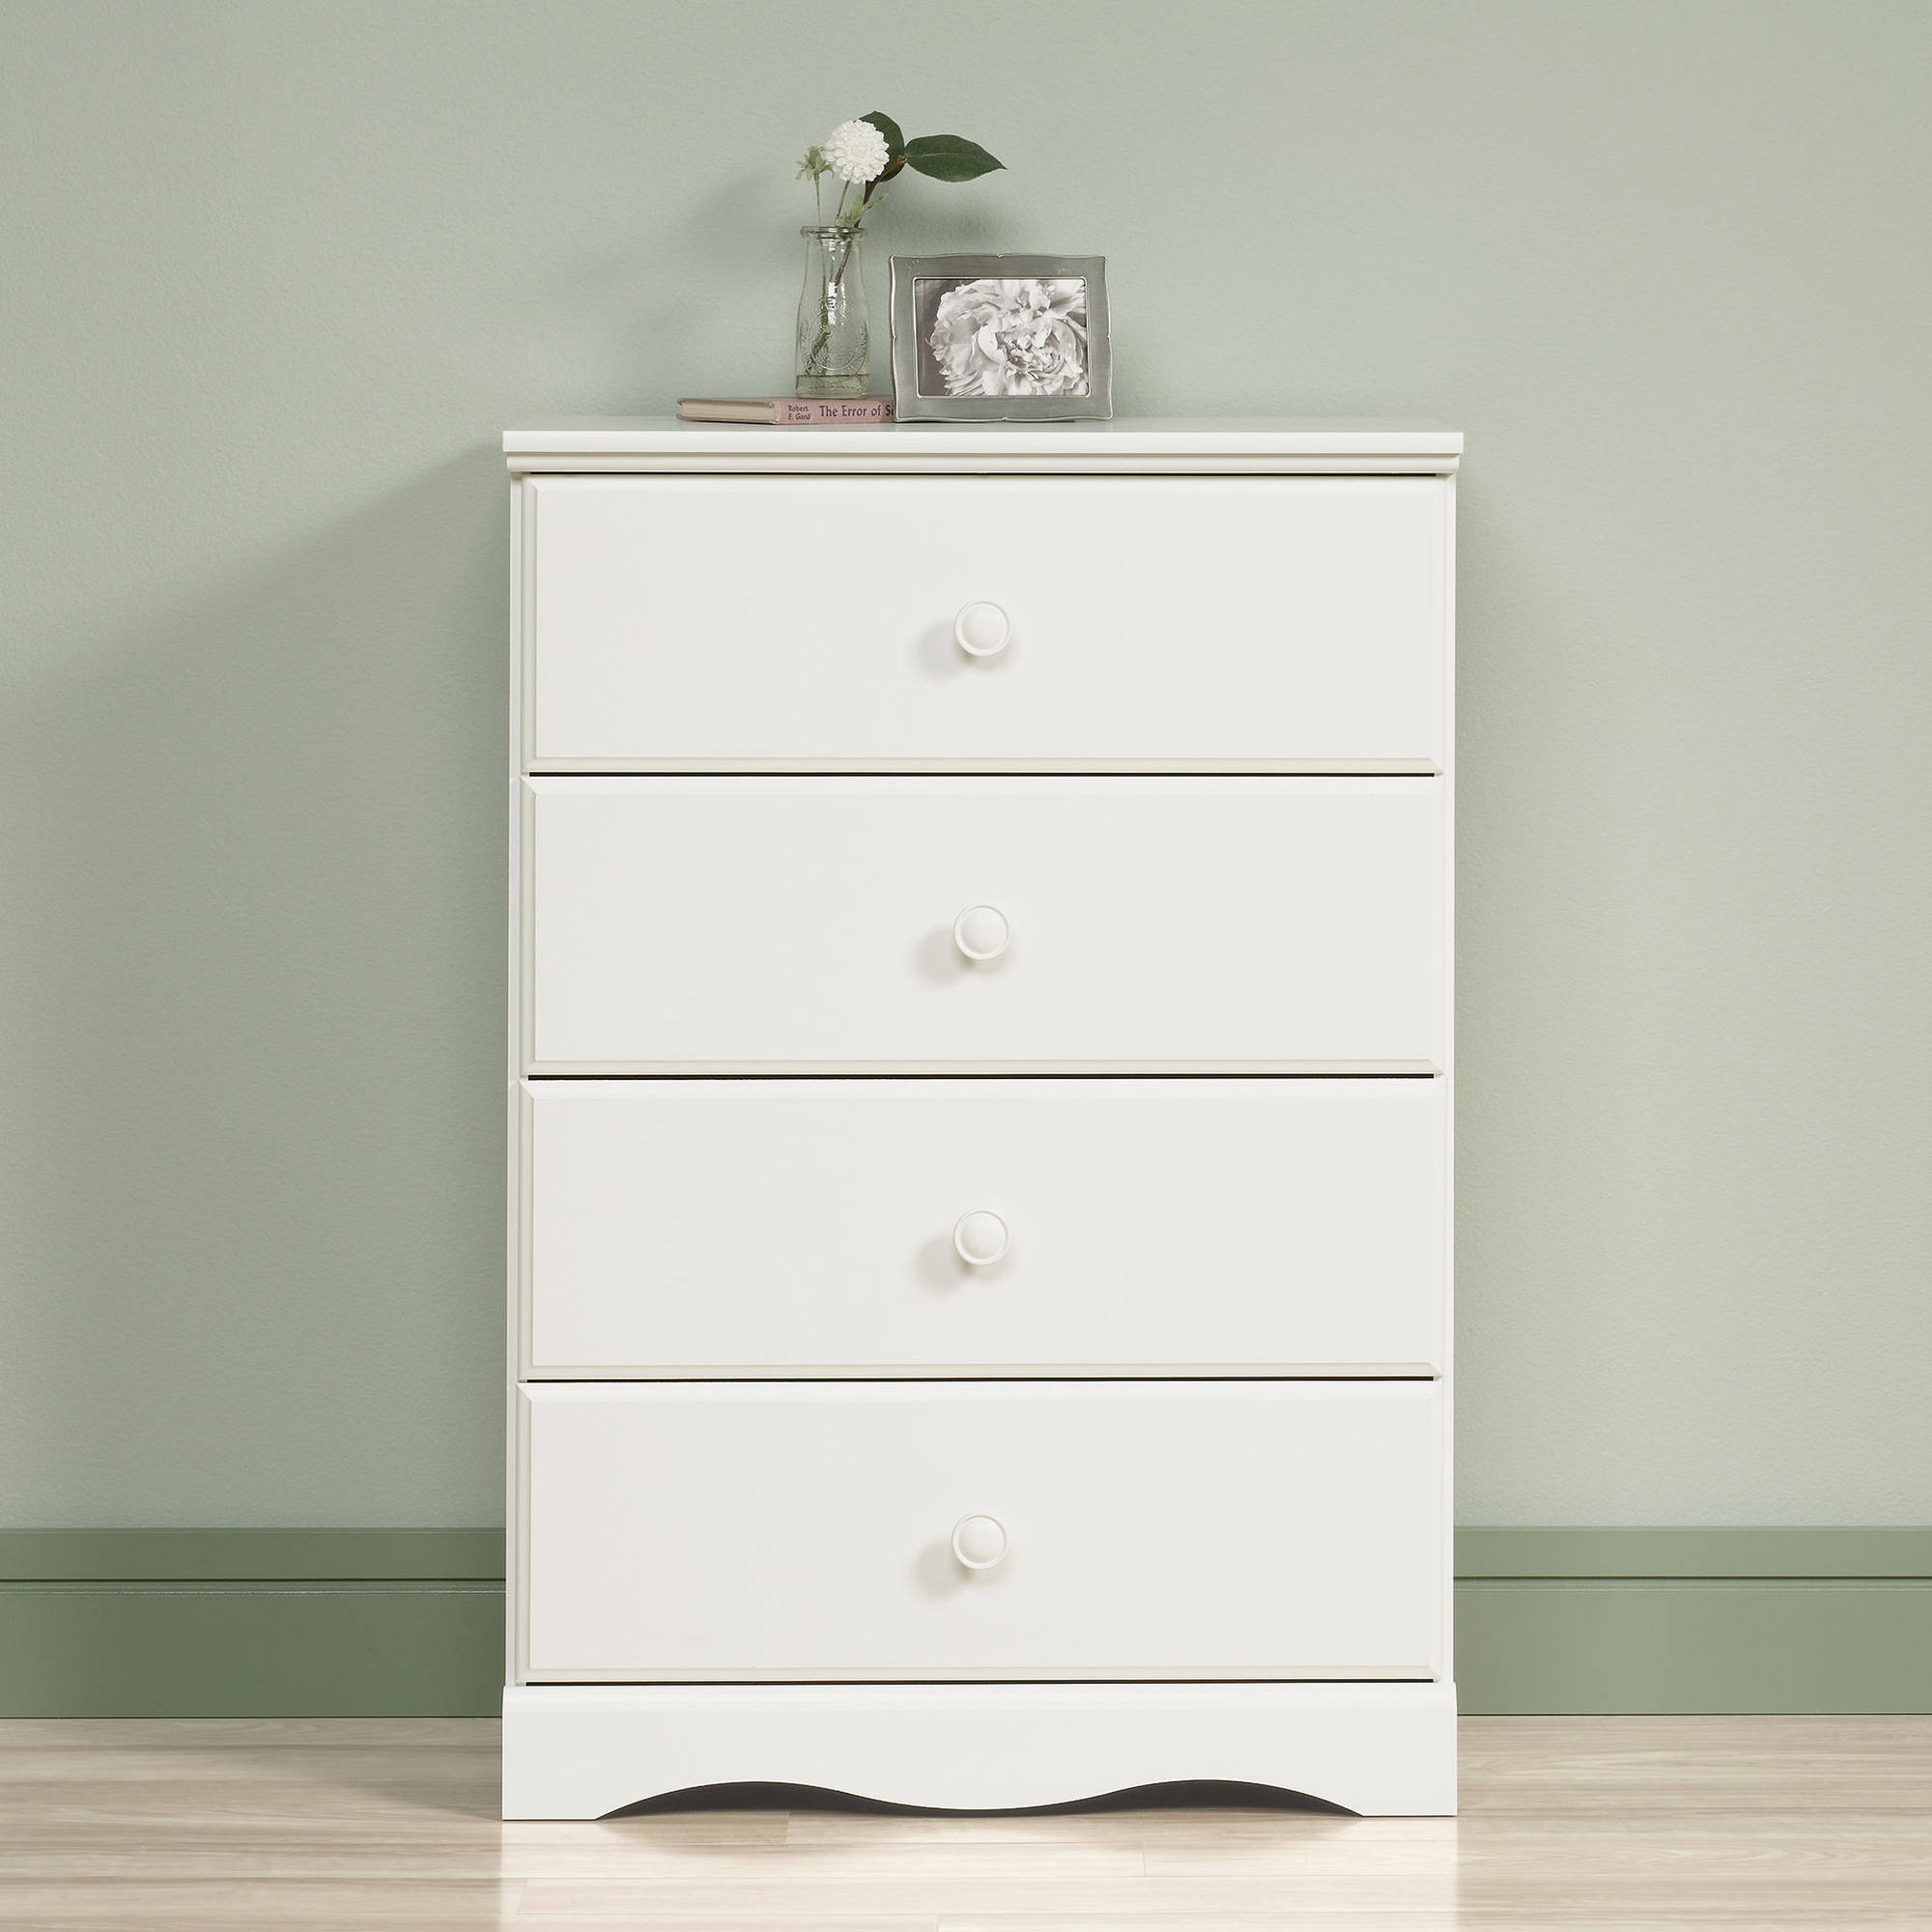 savannah dresser center from transitional black llc dering design york hall ducduc drawer furniture new dressers